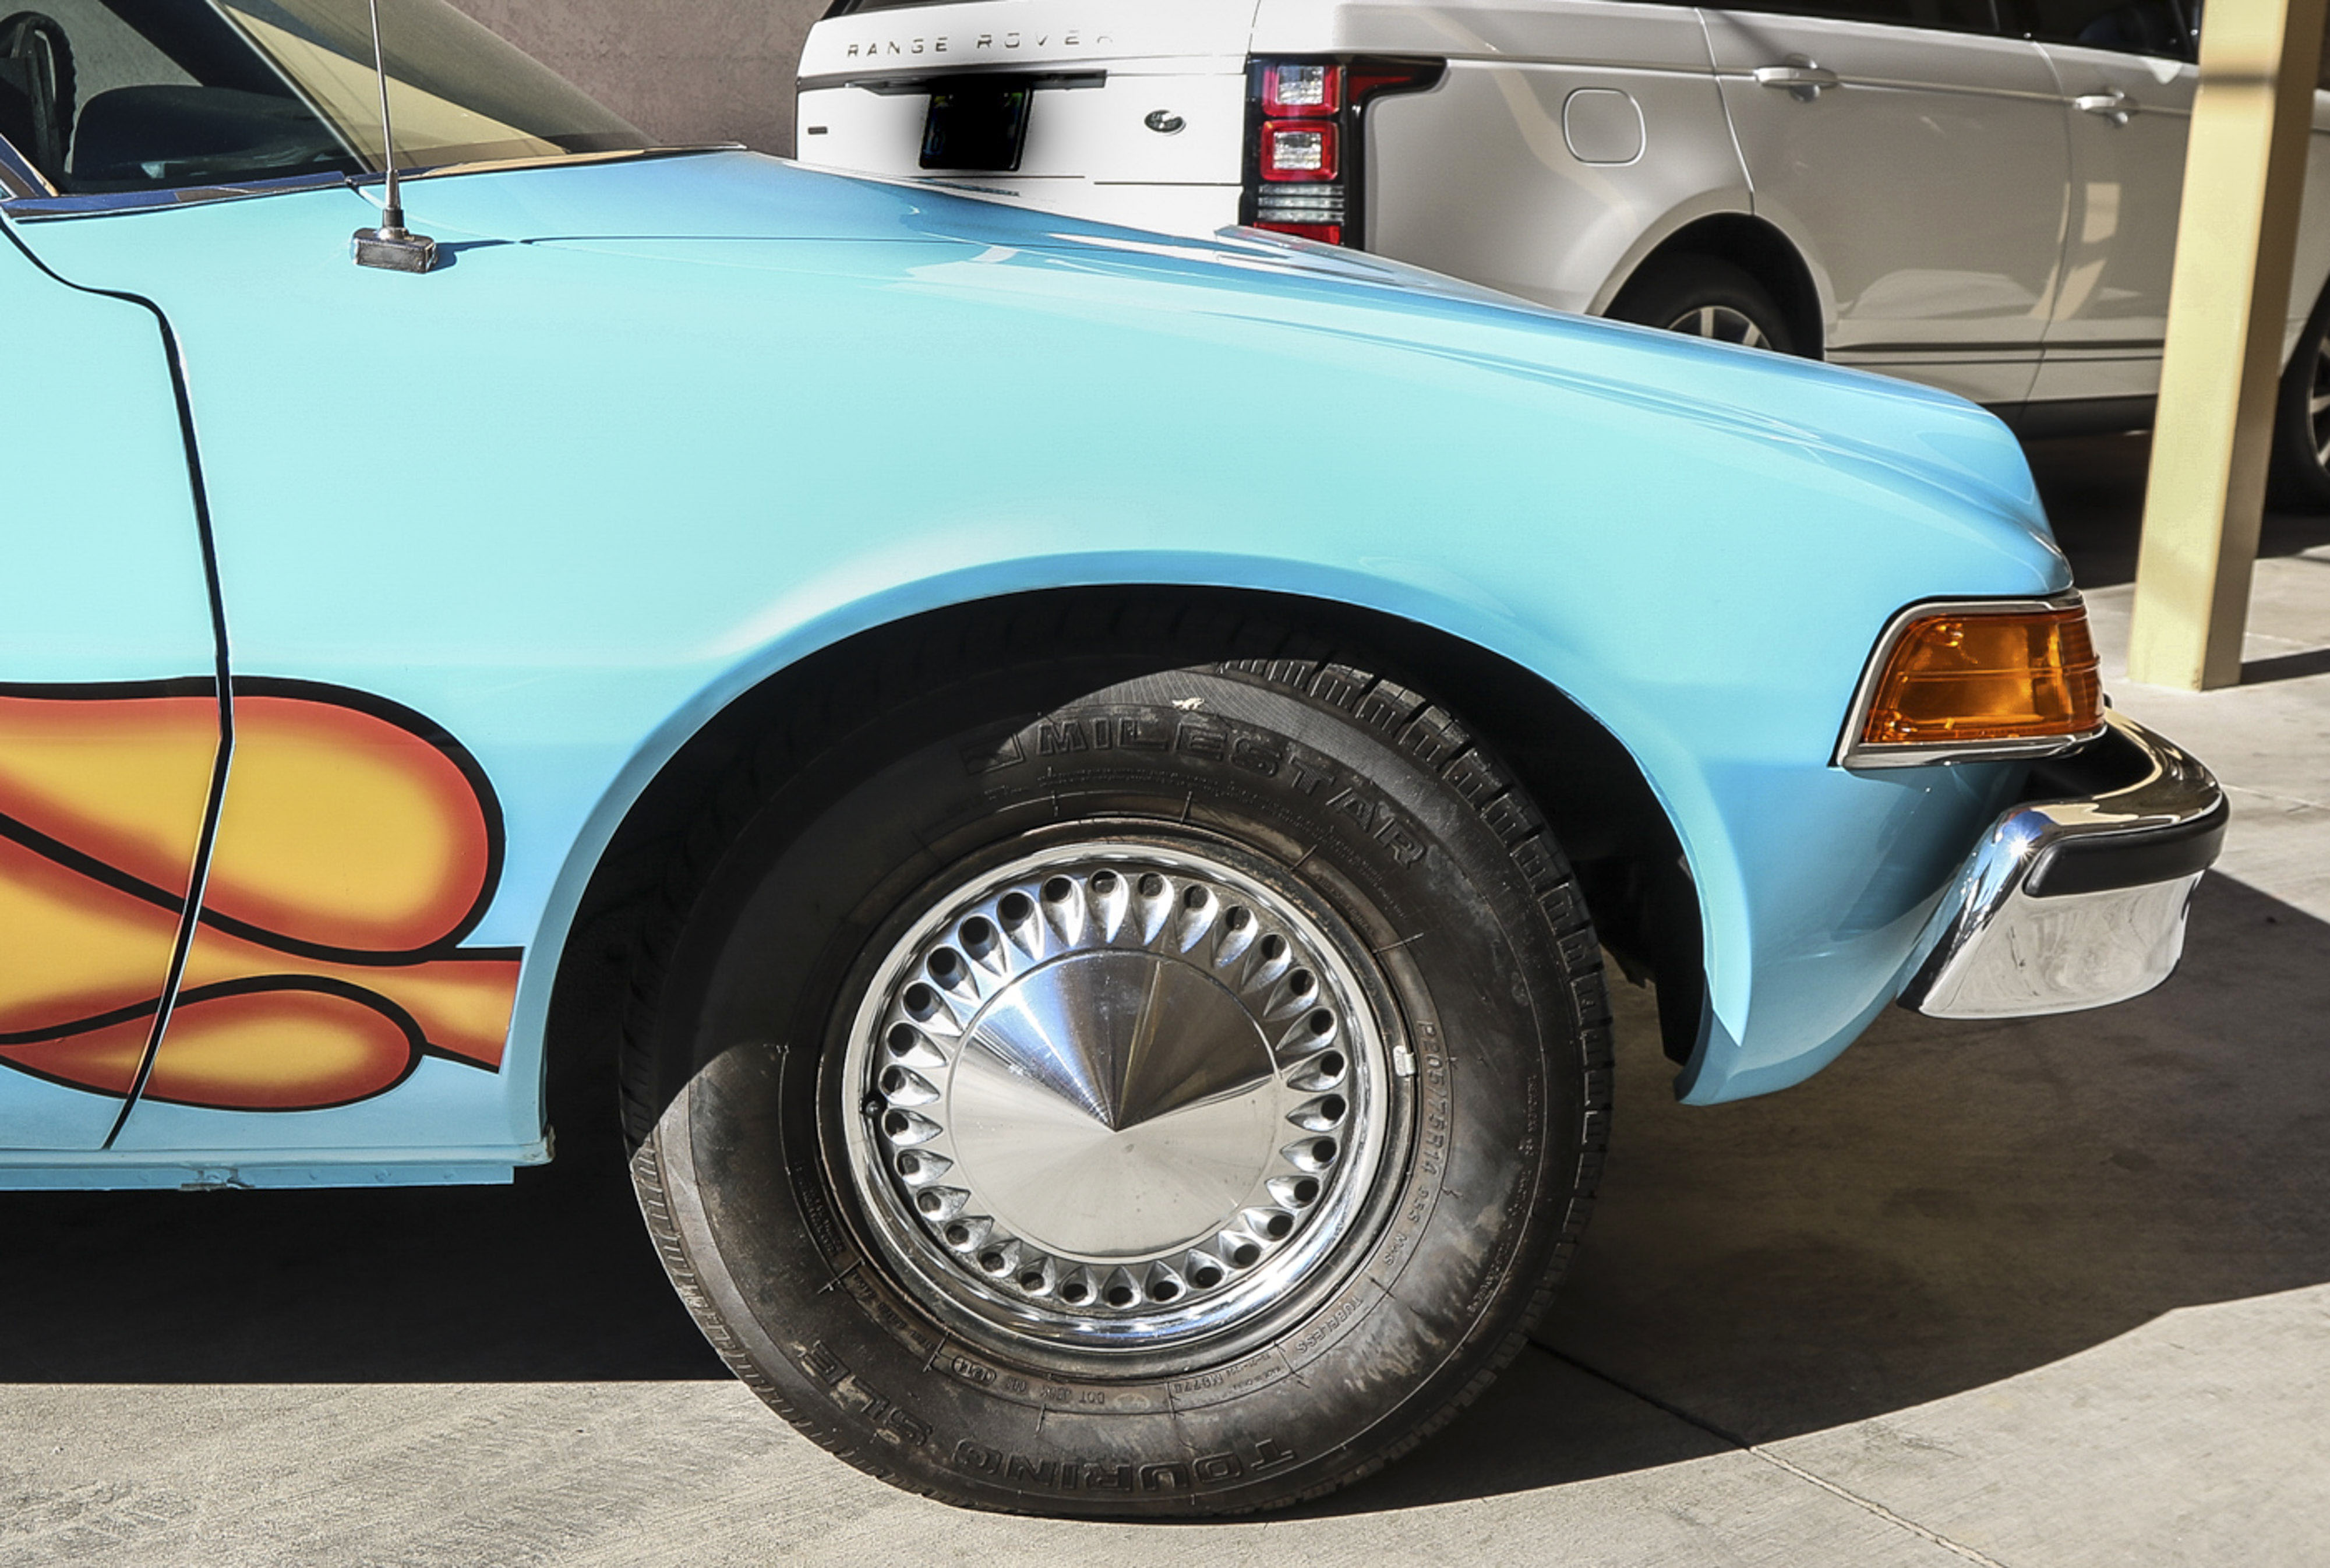 PIC FROM CATERS NEWS - (PICTURED:  A view of the Pacer from the film, Waynes World.) -Bismallah! The famous AMC Pacer from the 1992 smash hit film Waynes World has been let go at auction for 7,400 (30,734). The car rose to prominence during a scene in which main characters, Wayne Campbell and Garth Algar, belt out a head-banging rendition of Queens famous Bohemian Rhapsody. The film finished 1992 as one of the top grossing films of that year, and caused the rock ballad to rocket to number two in the charts, 17 years after it was first released. A standard AMC Pacer would be expected to sell for no more than ,000. Original modifications made for the film are the baby blue paint and the flames around the wheel arches, a hole in the roof for the famous liquorice dispenser, new rear wheelhouses to fit speaker boxes, and a cup dispenser in the inner dashboard. Tow hooks and steel plates were also welded to the car for filming and camera supports. The studio also purposefully mismatched the wheel combination of chrome spoked wheels in the rear and standard hubcaps in the front. These features have been kept during the cars extensive restoration. SEE CATERS COPY.